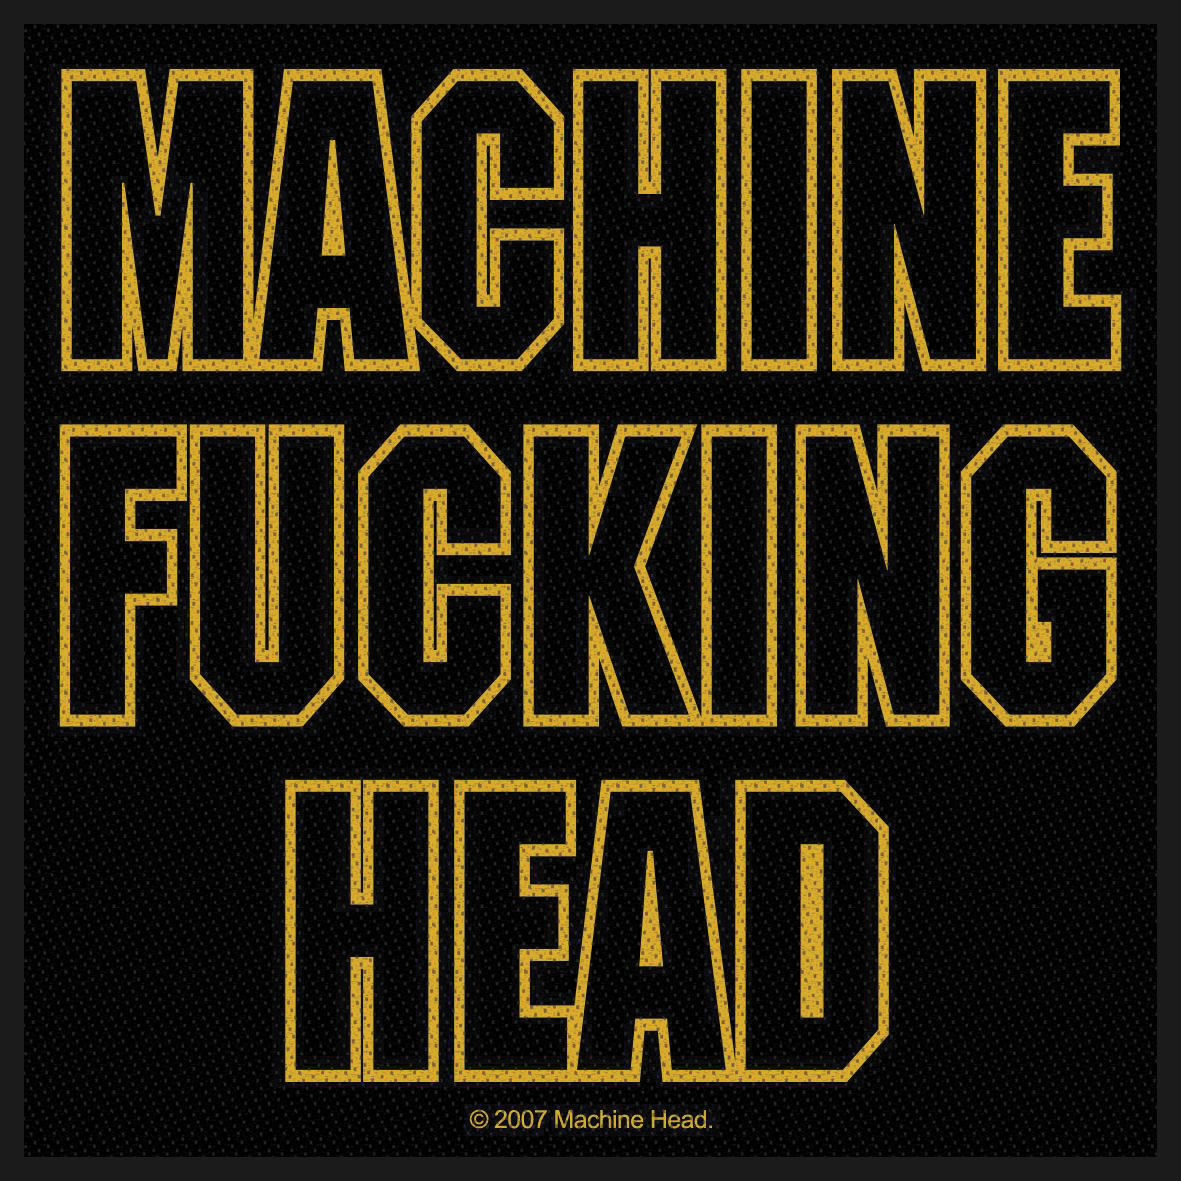 Thrash Under Pressure: Machine Head